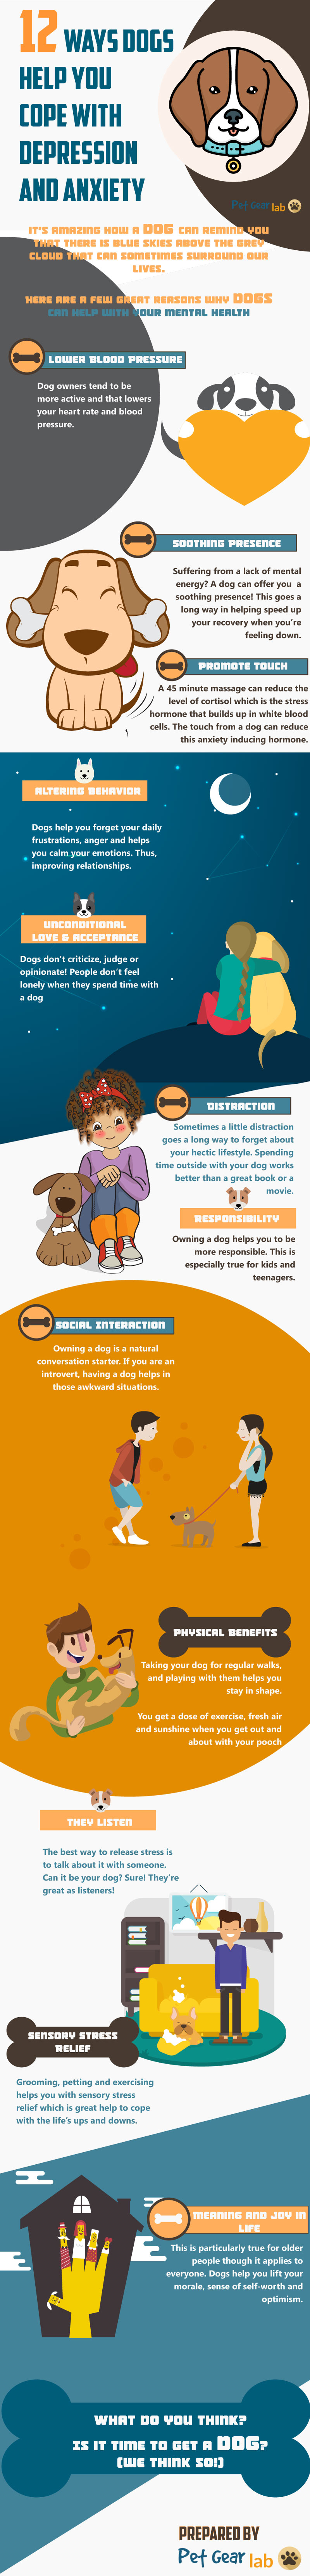 12 reasons dogs help with depression